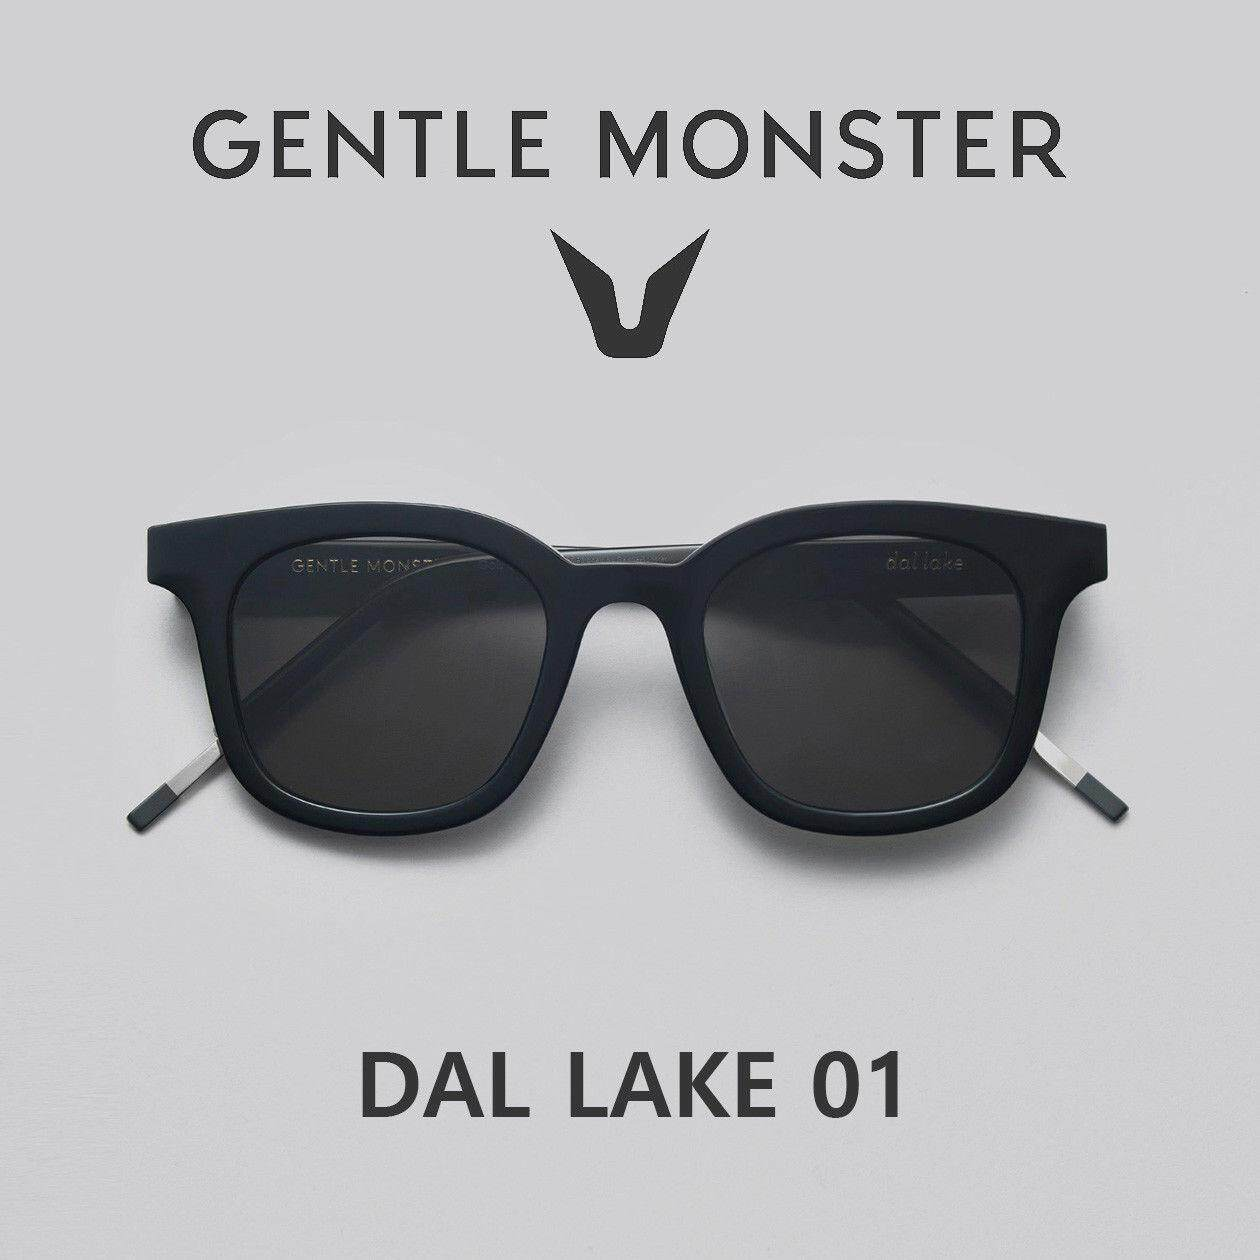 6d9e18548a76 Gentle Monster Dal Lake 01 Black Sunglasses Korea Sunglass eyeglasses lens  glasses Malaysia